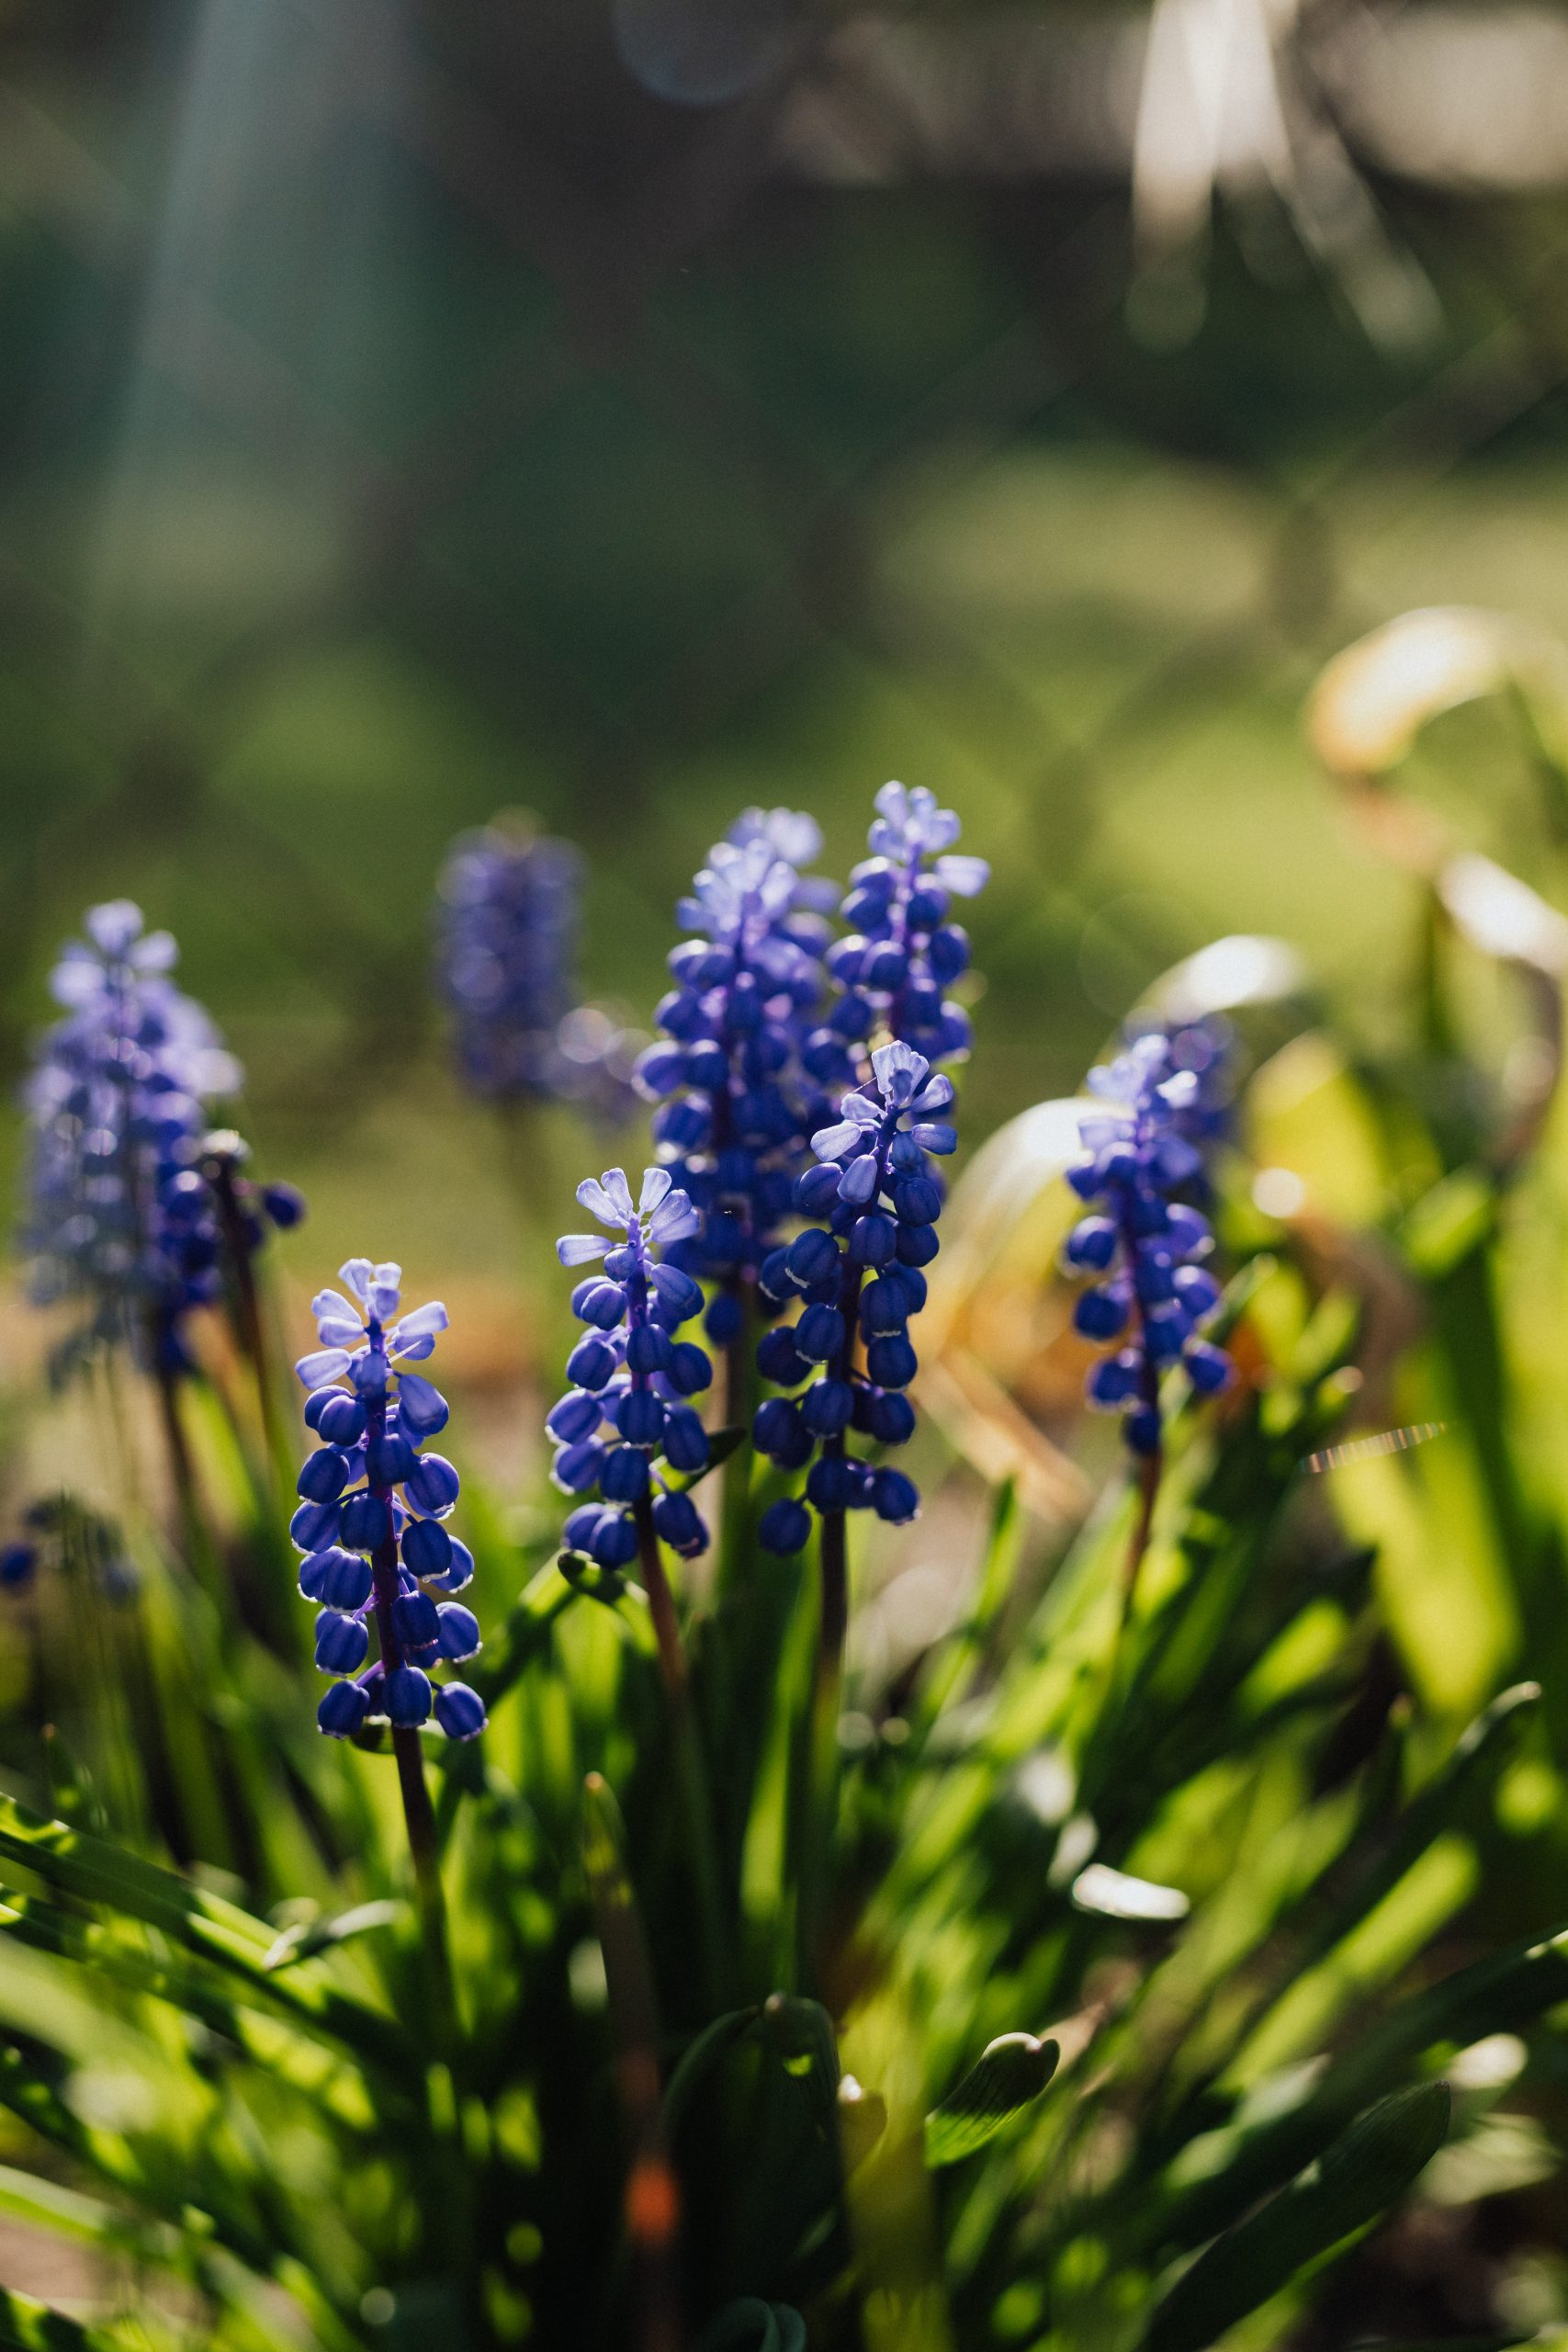 Grape hyacinths blooming in summer garden